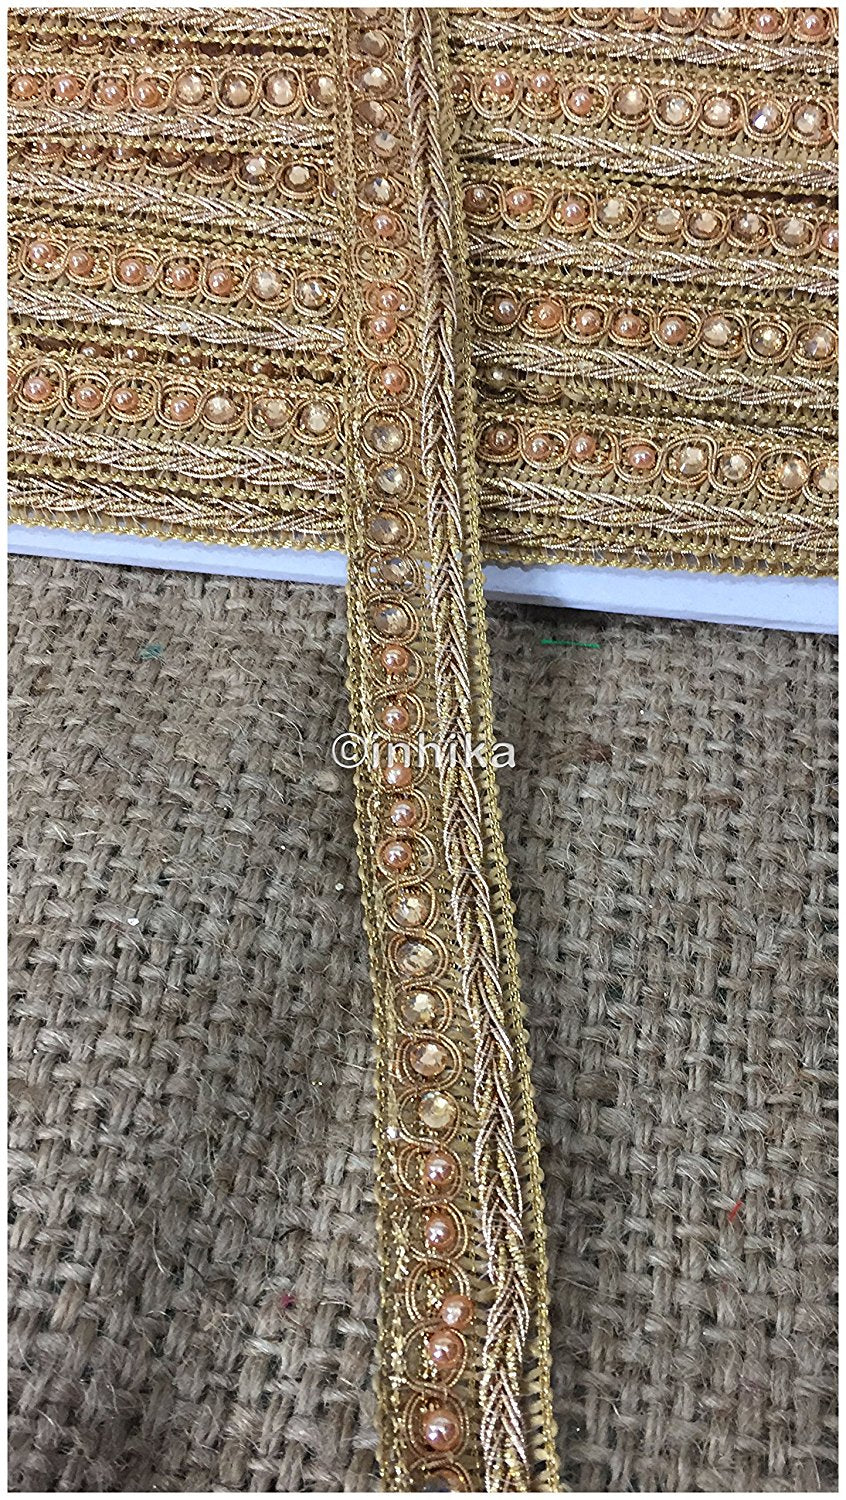 lace trim fabric trims and accessories used in garment industry Gold, Embroidery, Stone, Pearl, 1 Inch Wide material Cotton Mix